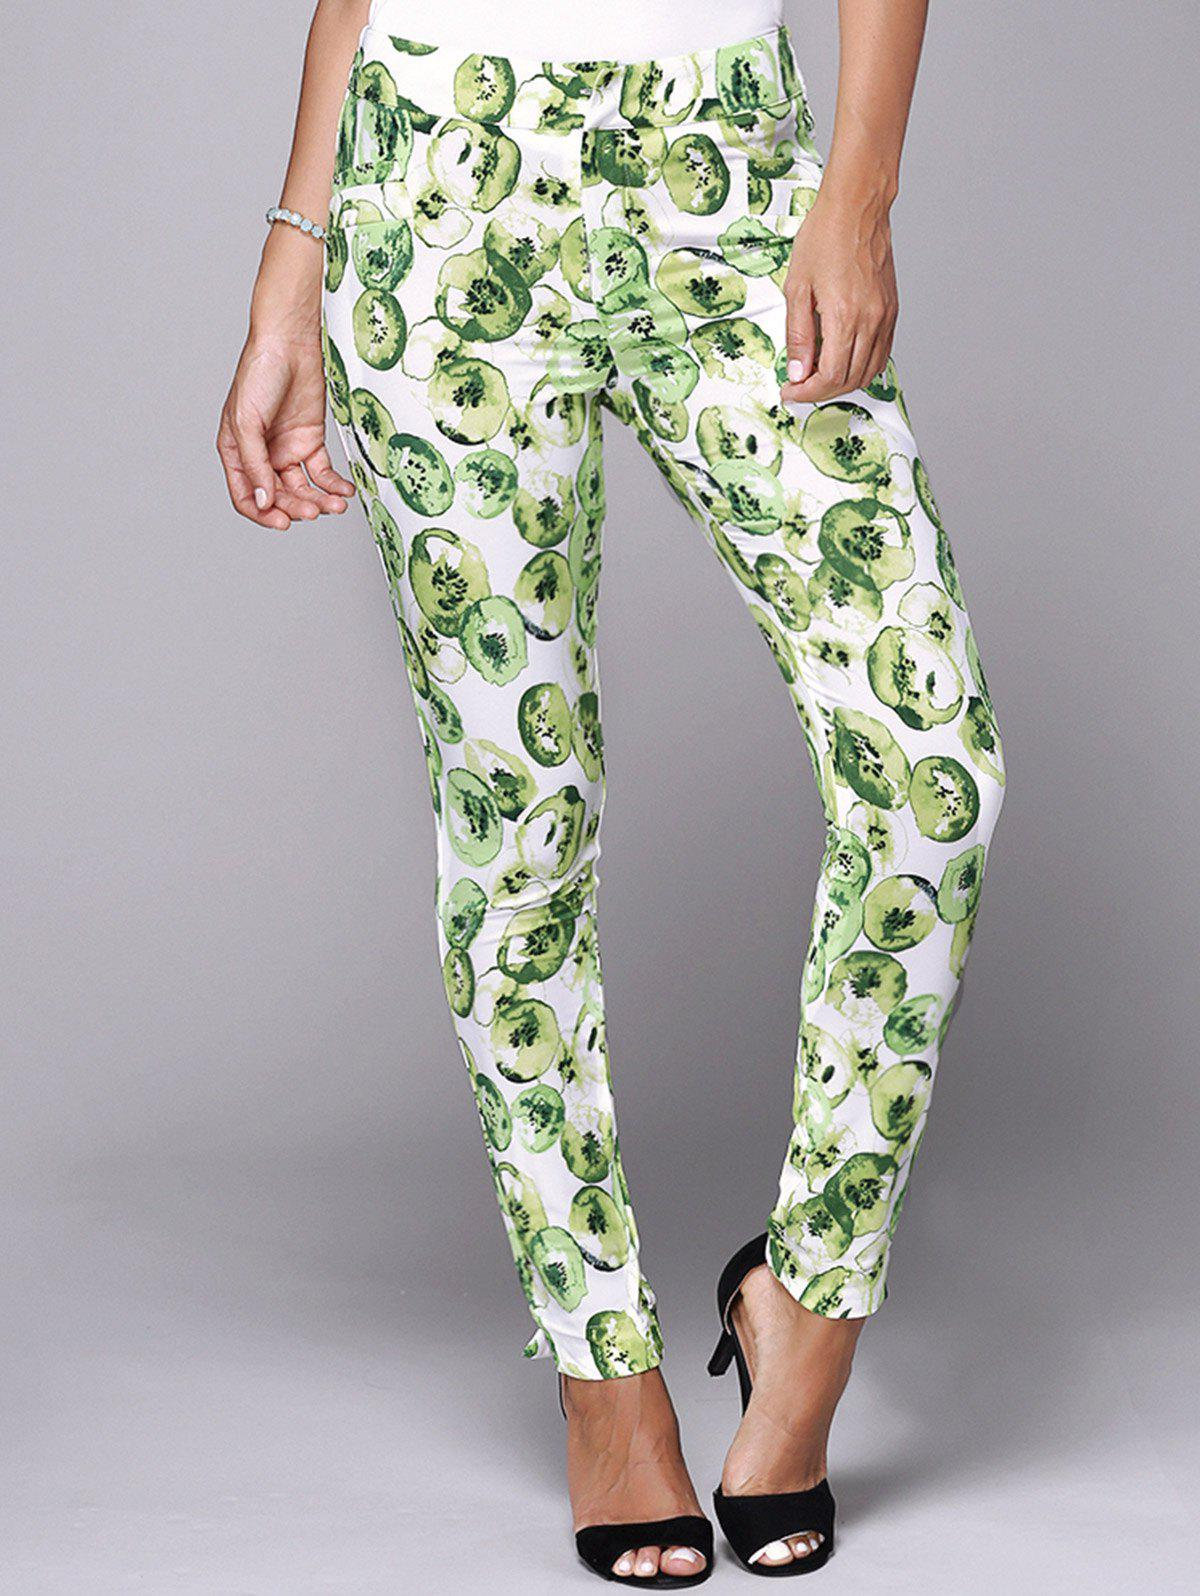 Chic Elastic Waist Print Skinny Pants For Women - LIGHT GREEN L